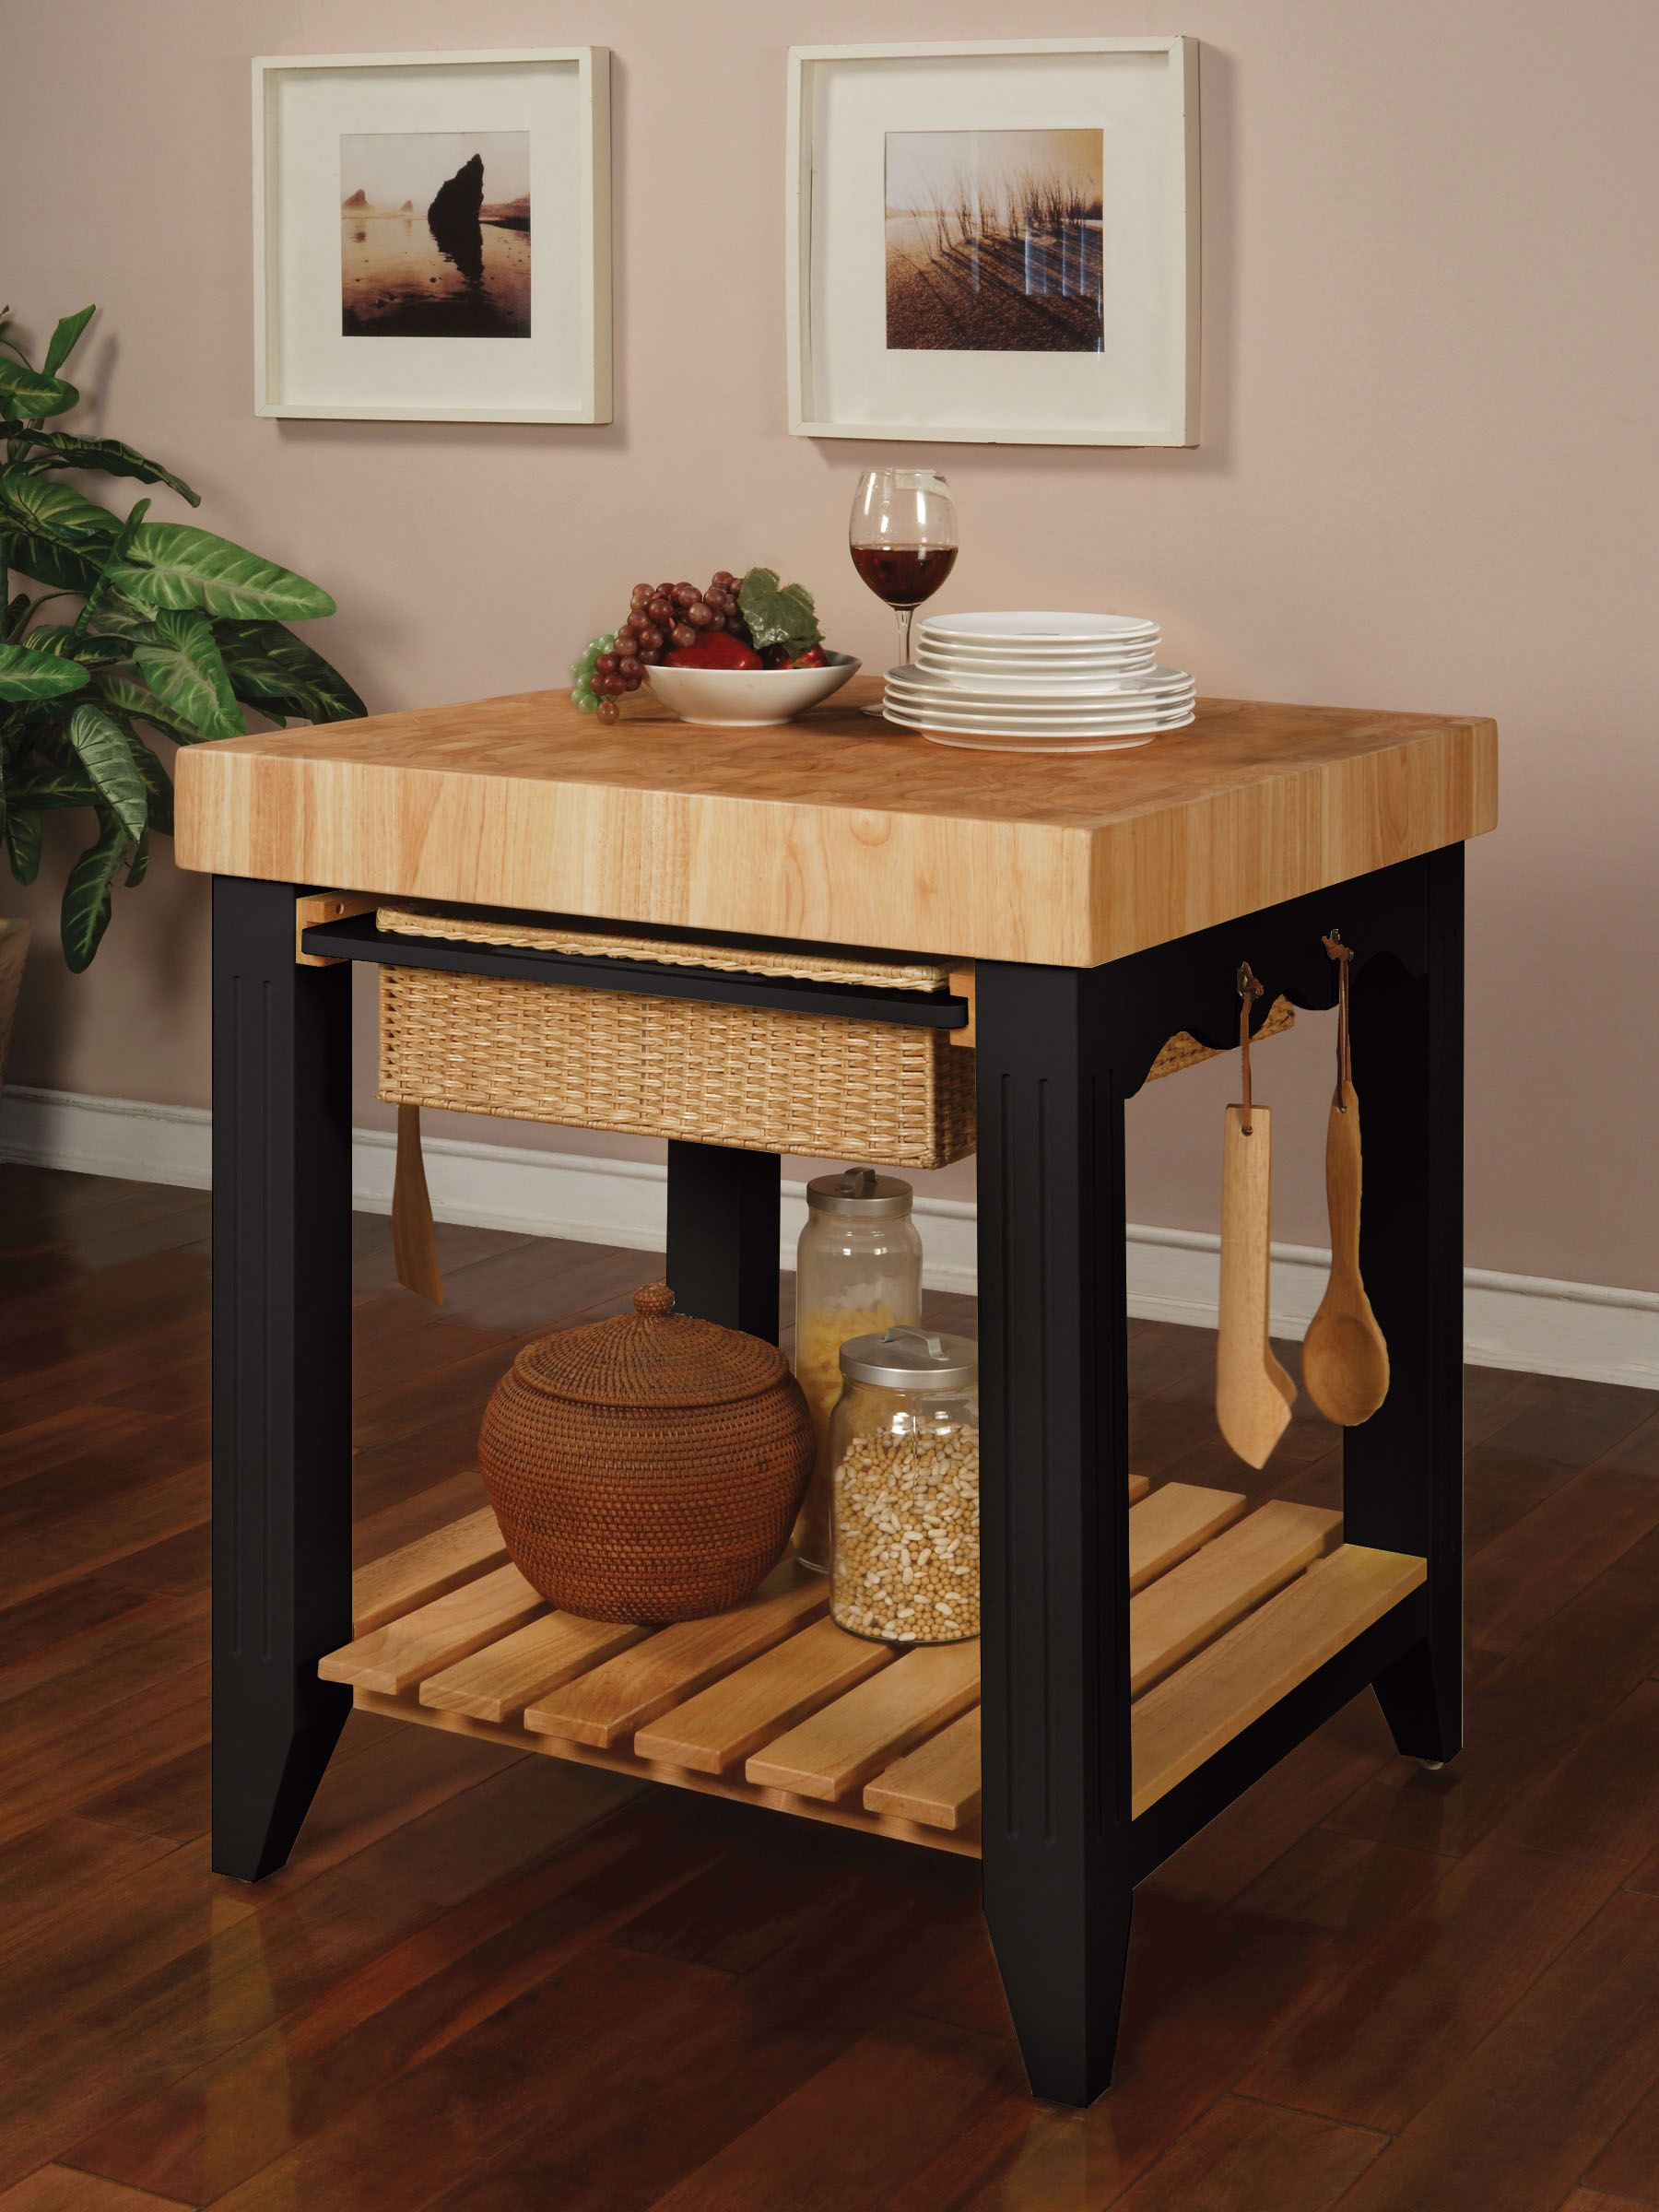 L powell color story black butcher block kitchen island decoration l powell color story black butcher block kitchen island workwithnaturefo